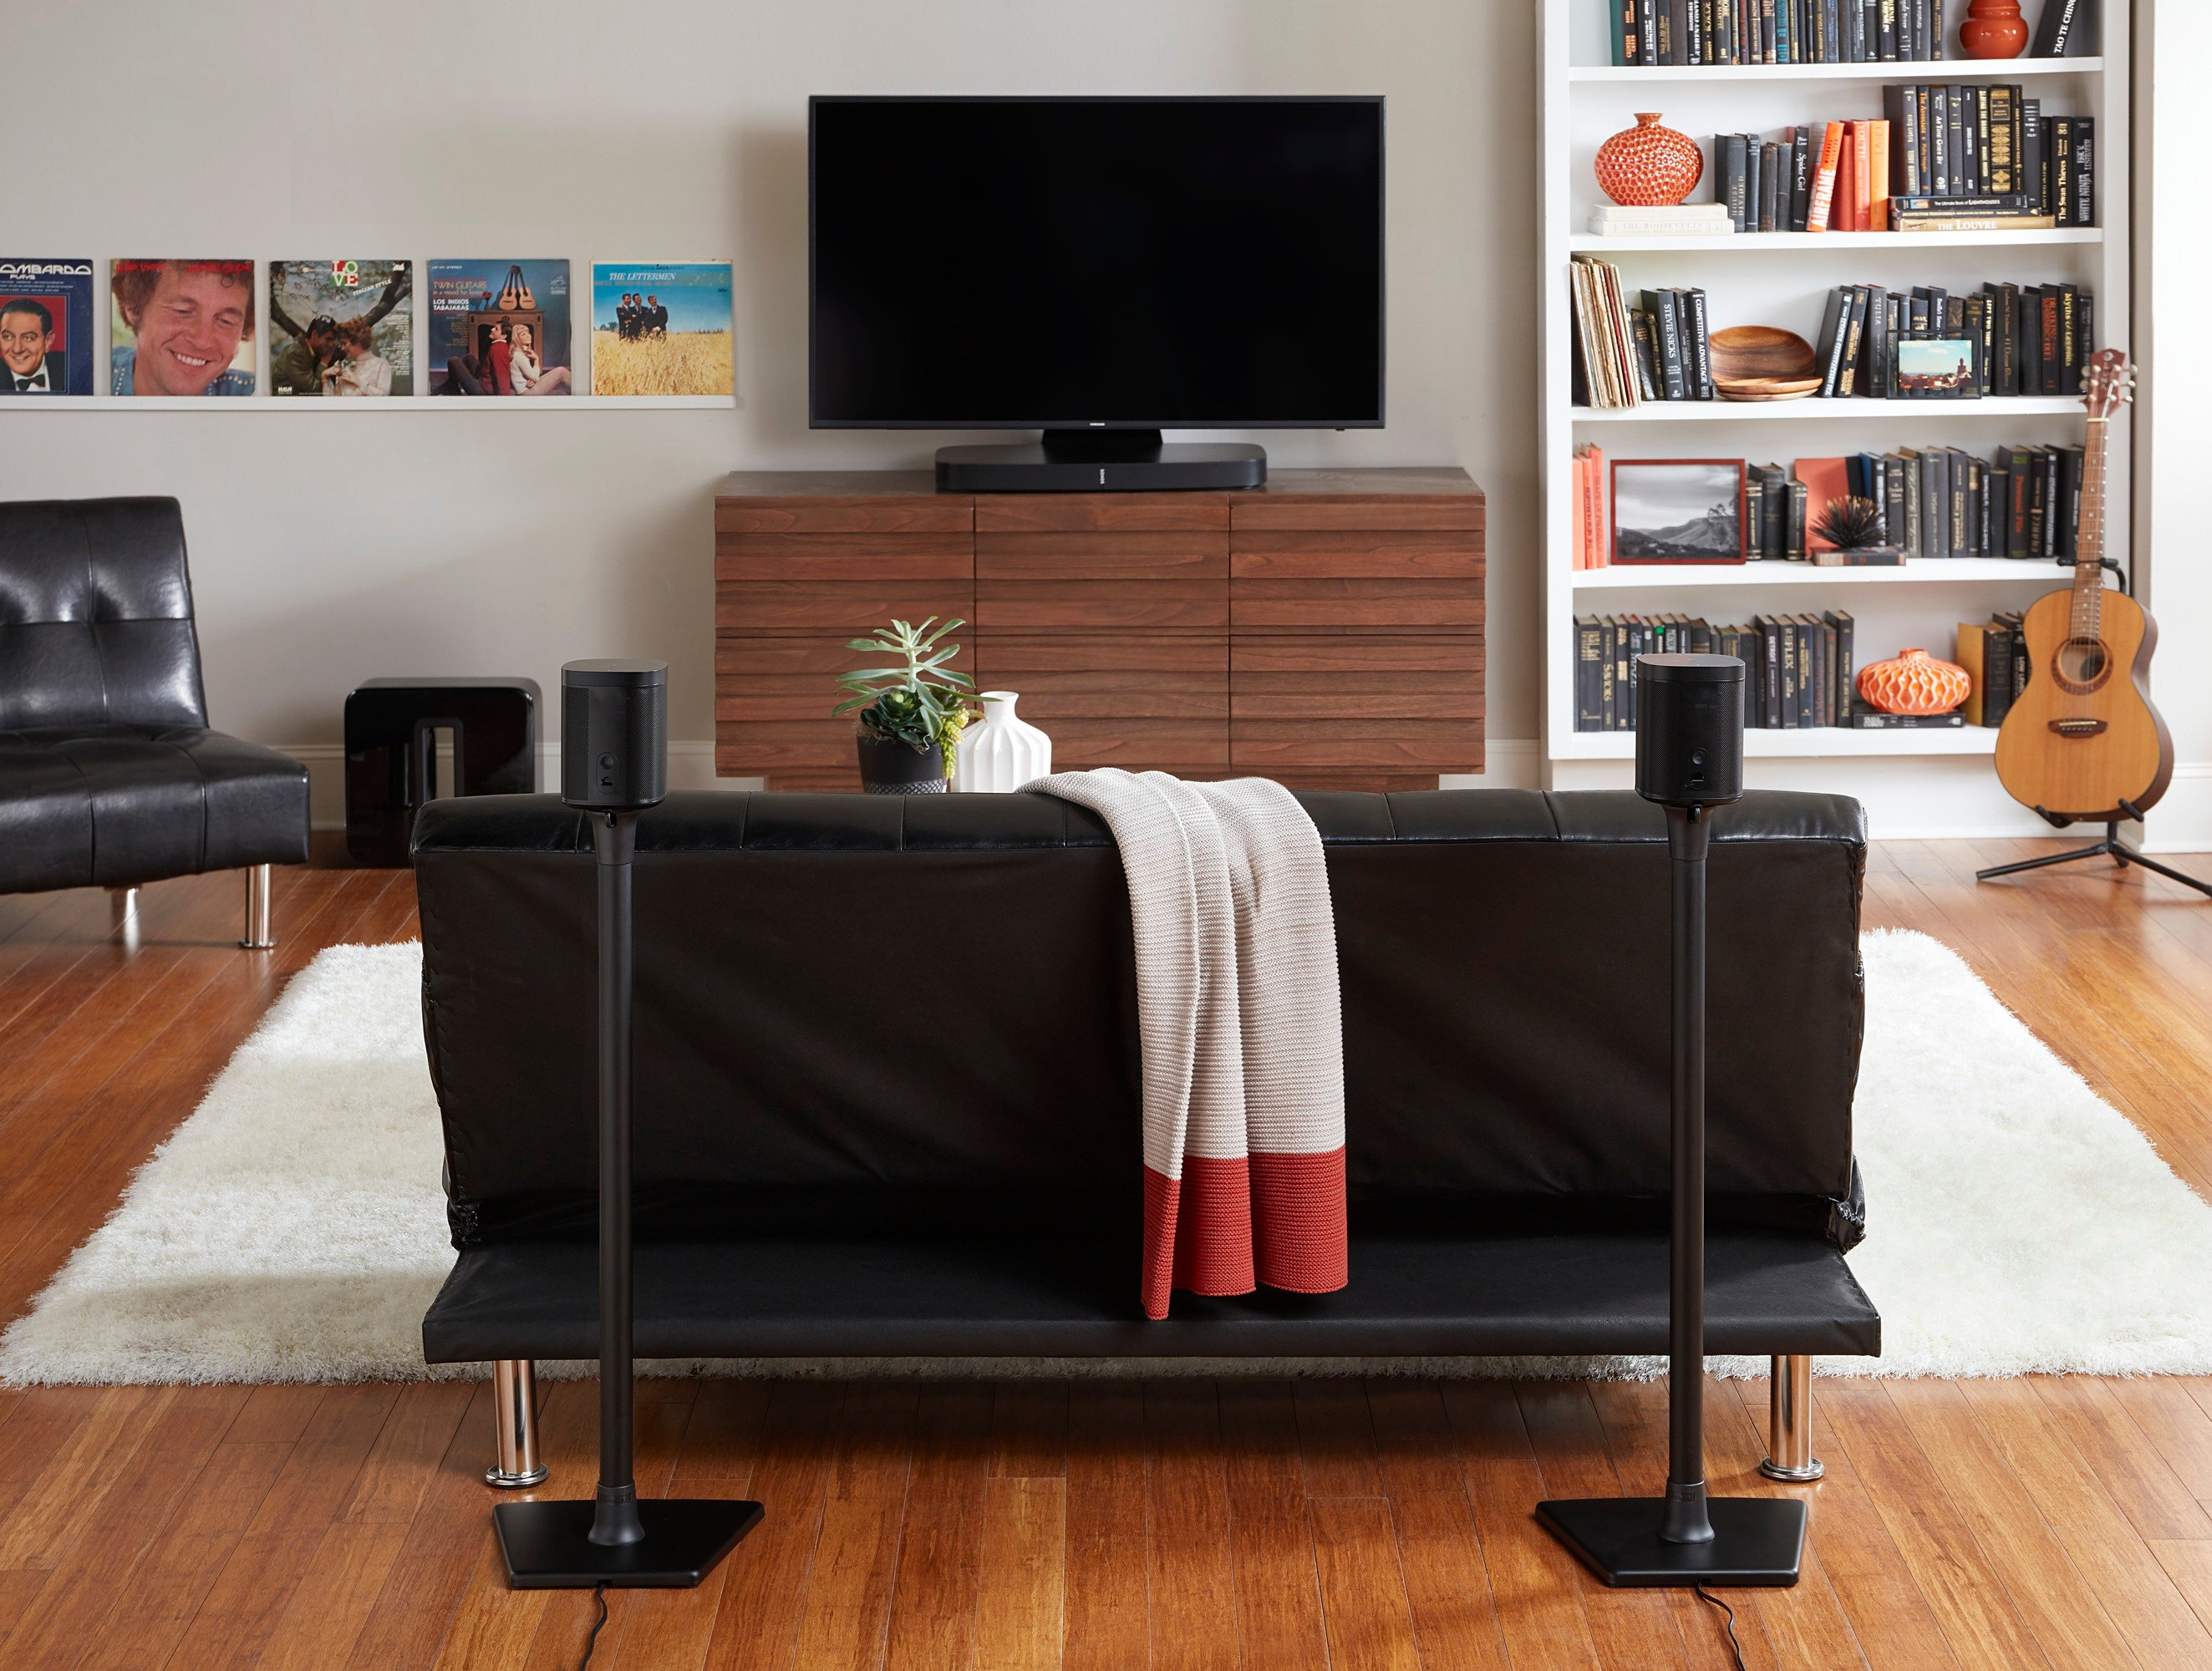 Sonos 5.1 Surround Sound with SANUS Speaker Stands